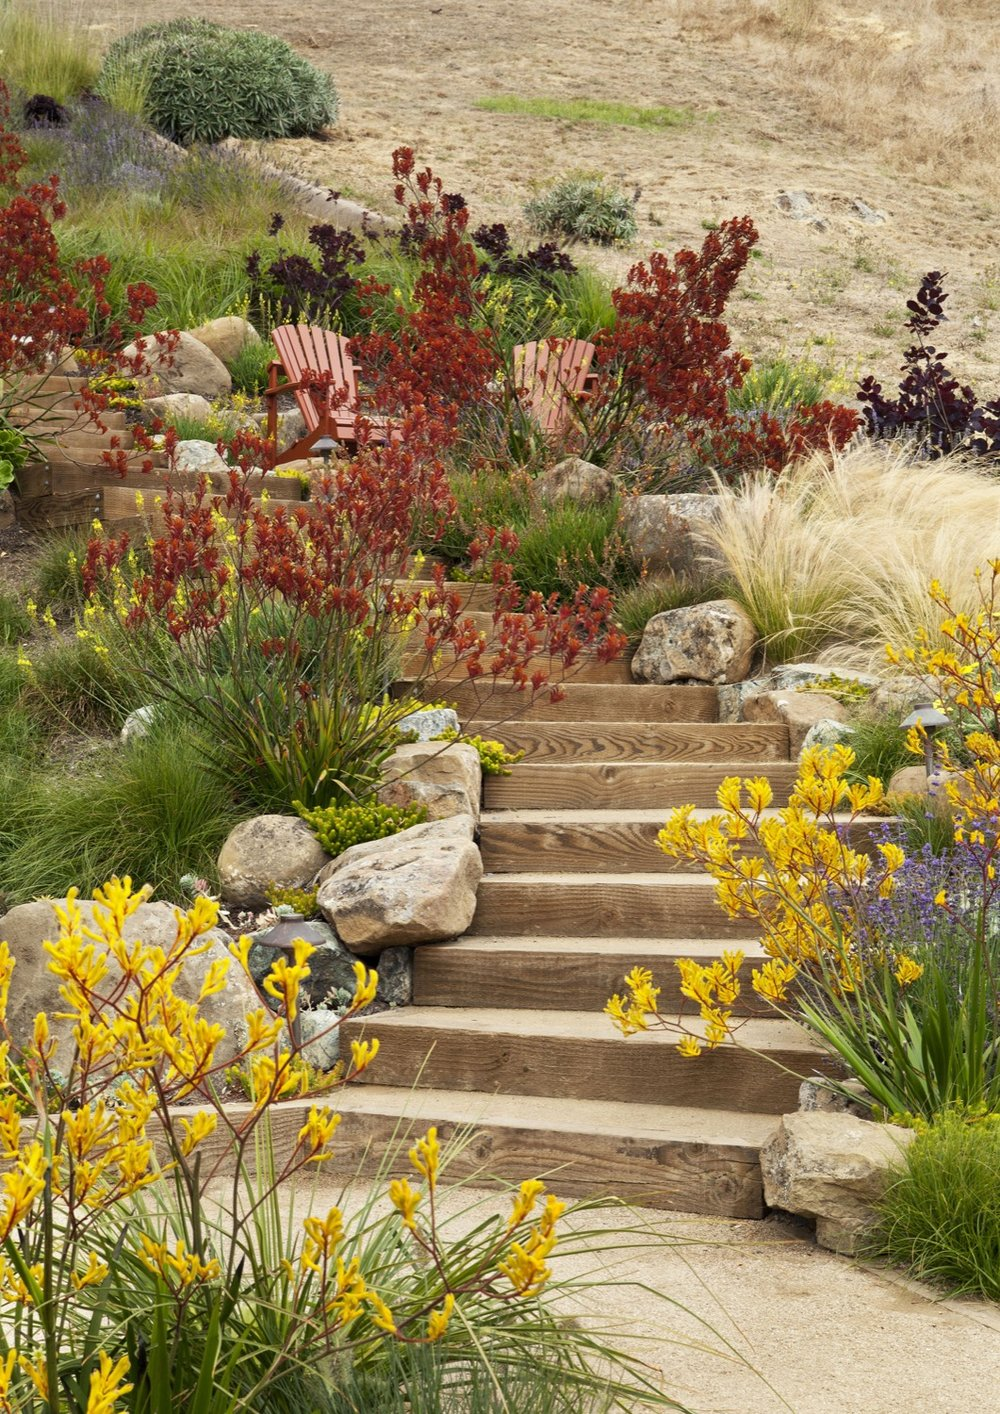 Red and yellow plantings warm up cool tones of the site.